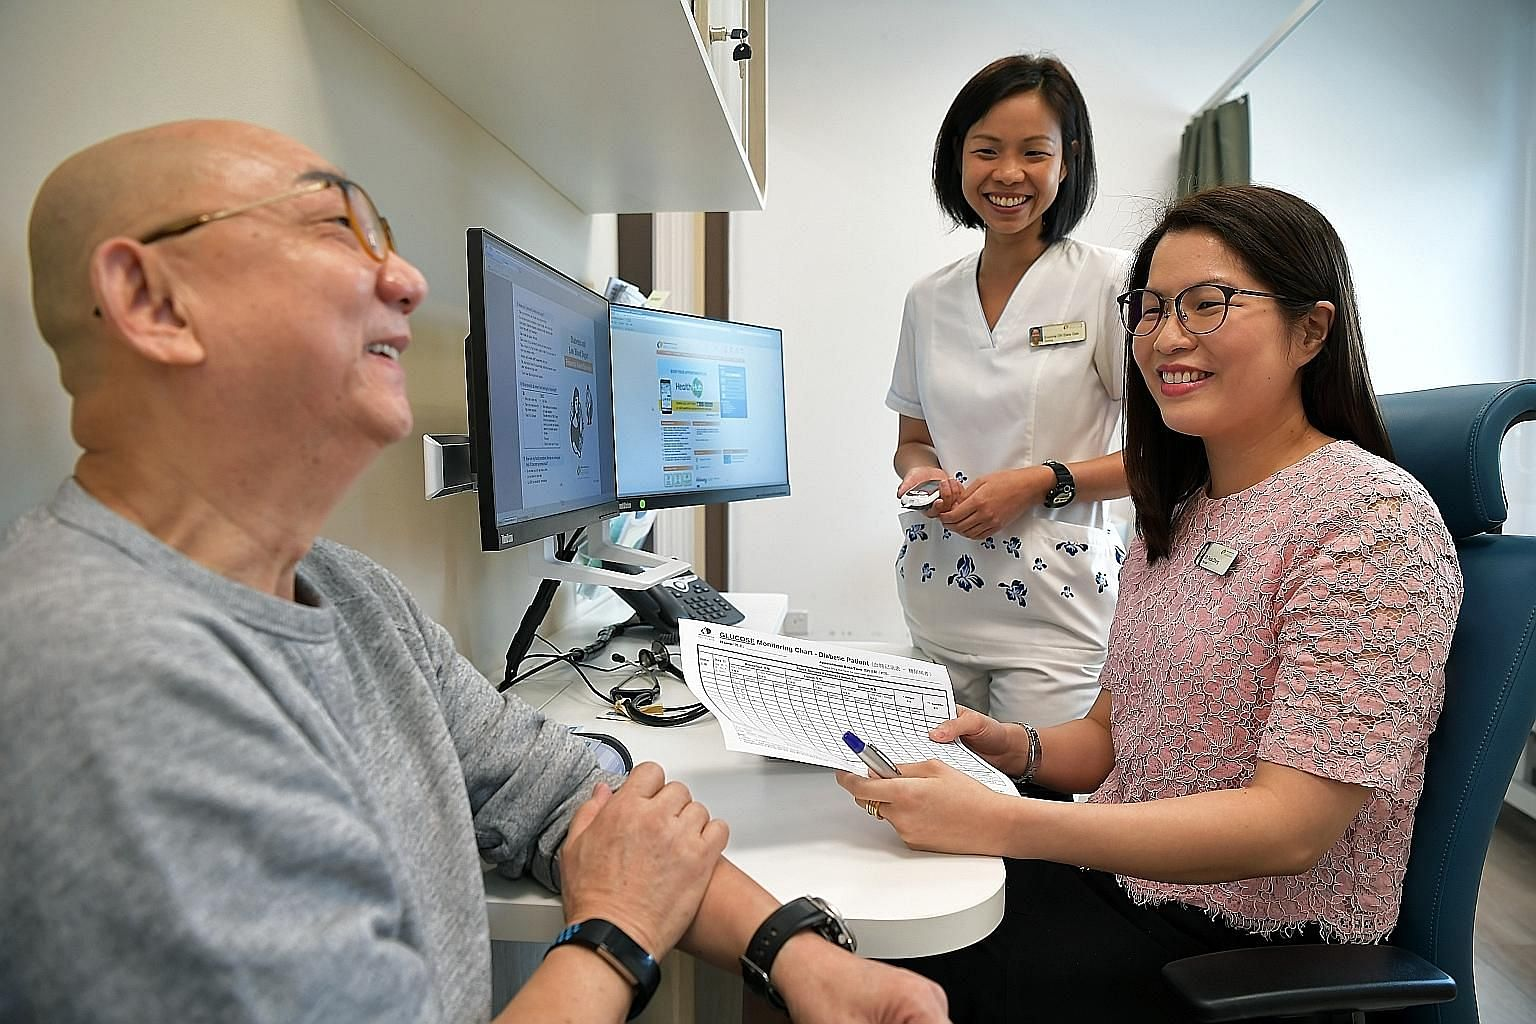 Mr George Then has seen his blood sugar level drop to a healthy level under the teamlet care programme with Dr Tricia Chang (seated) and care manager Evonne Oh.